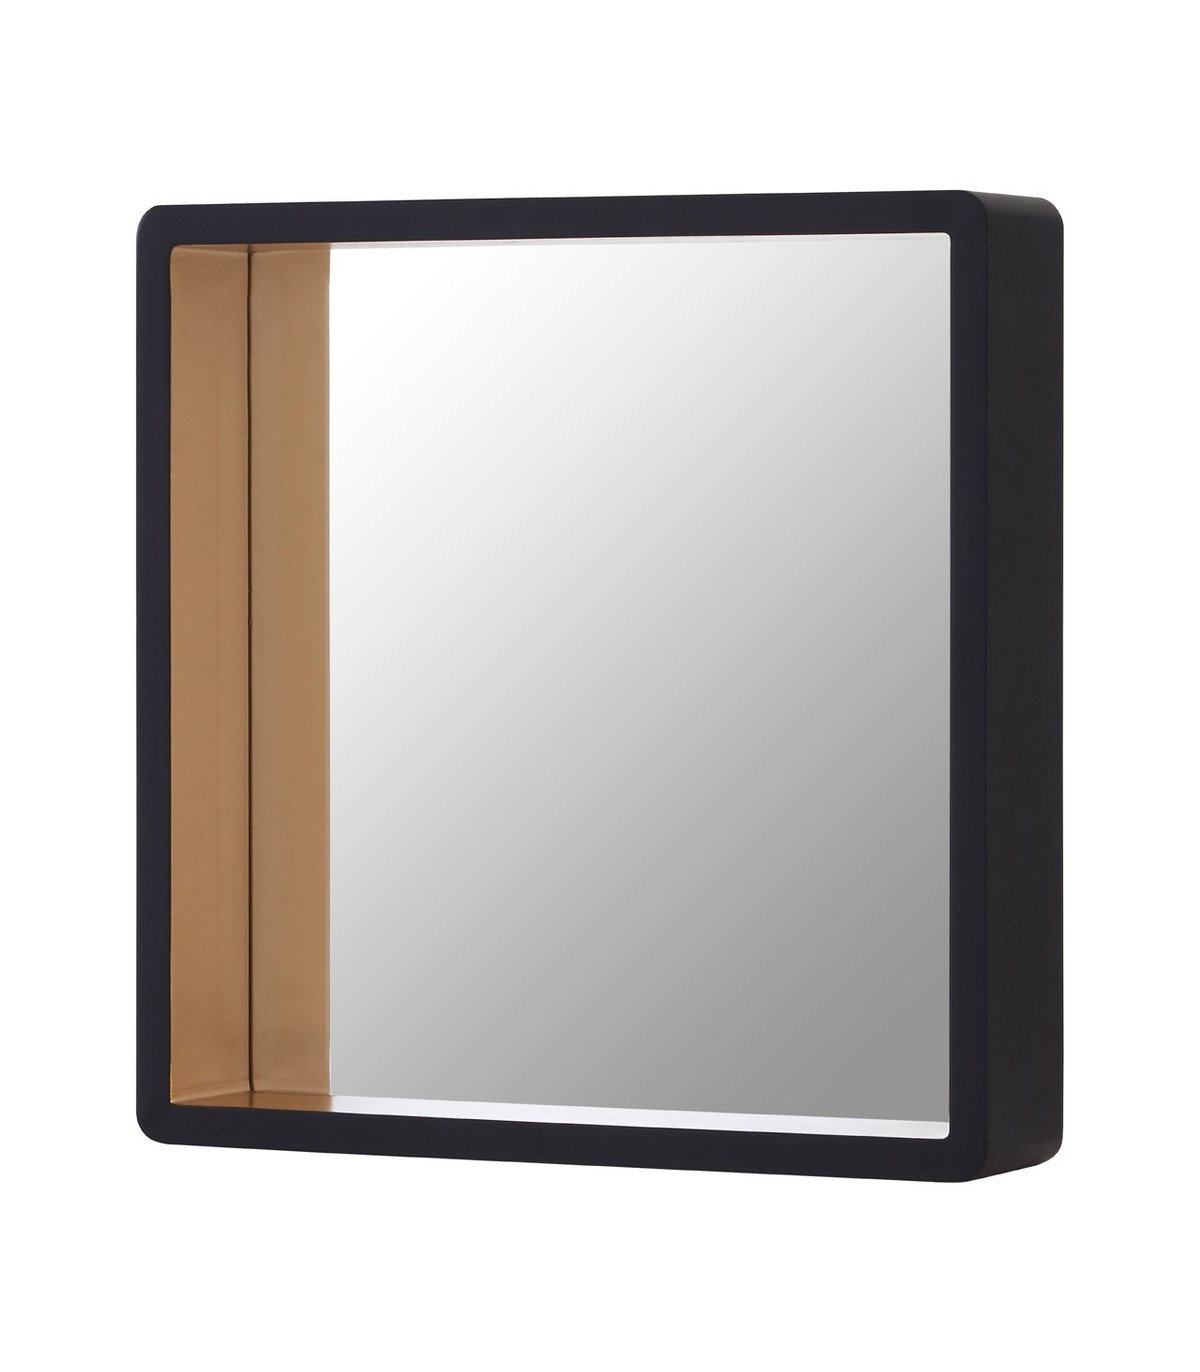 Large Black Wall Mirrors Regarding 2019 Large Black Wall Mirror With Gold Edge (Gallery 11 of 20)